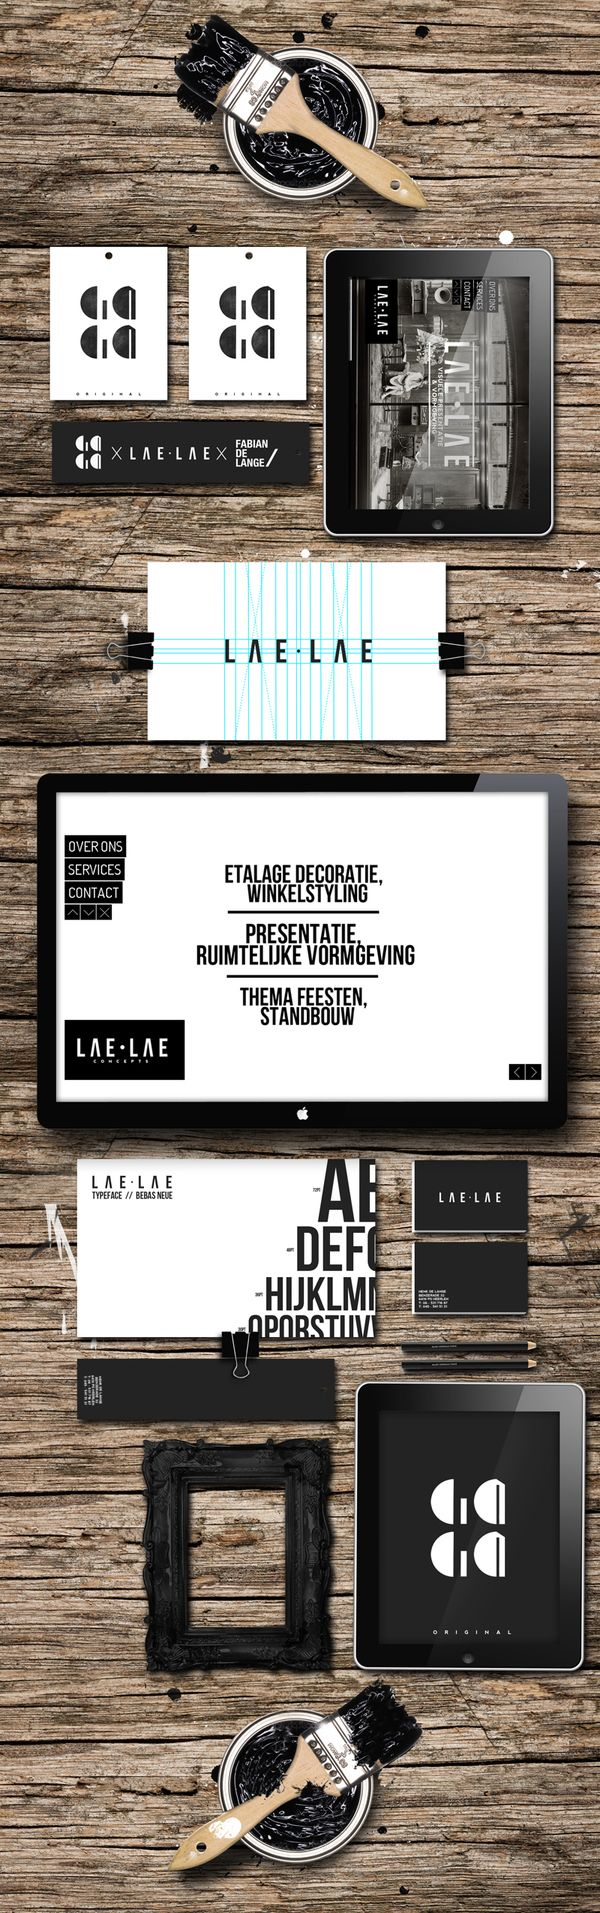 LAE.LAE, corporate + visual identity, branding by Fabian de Lange